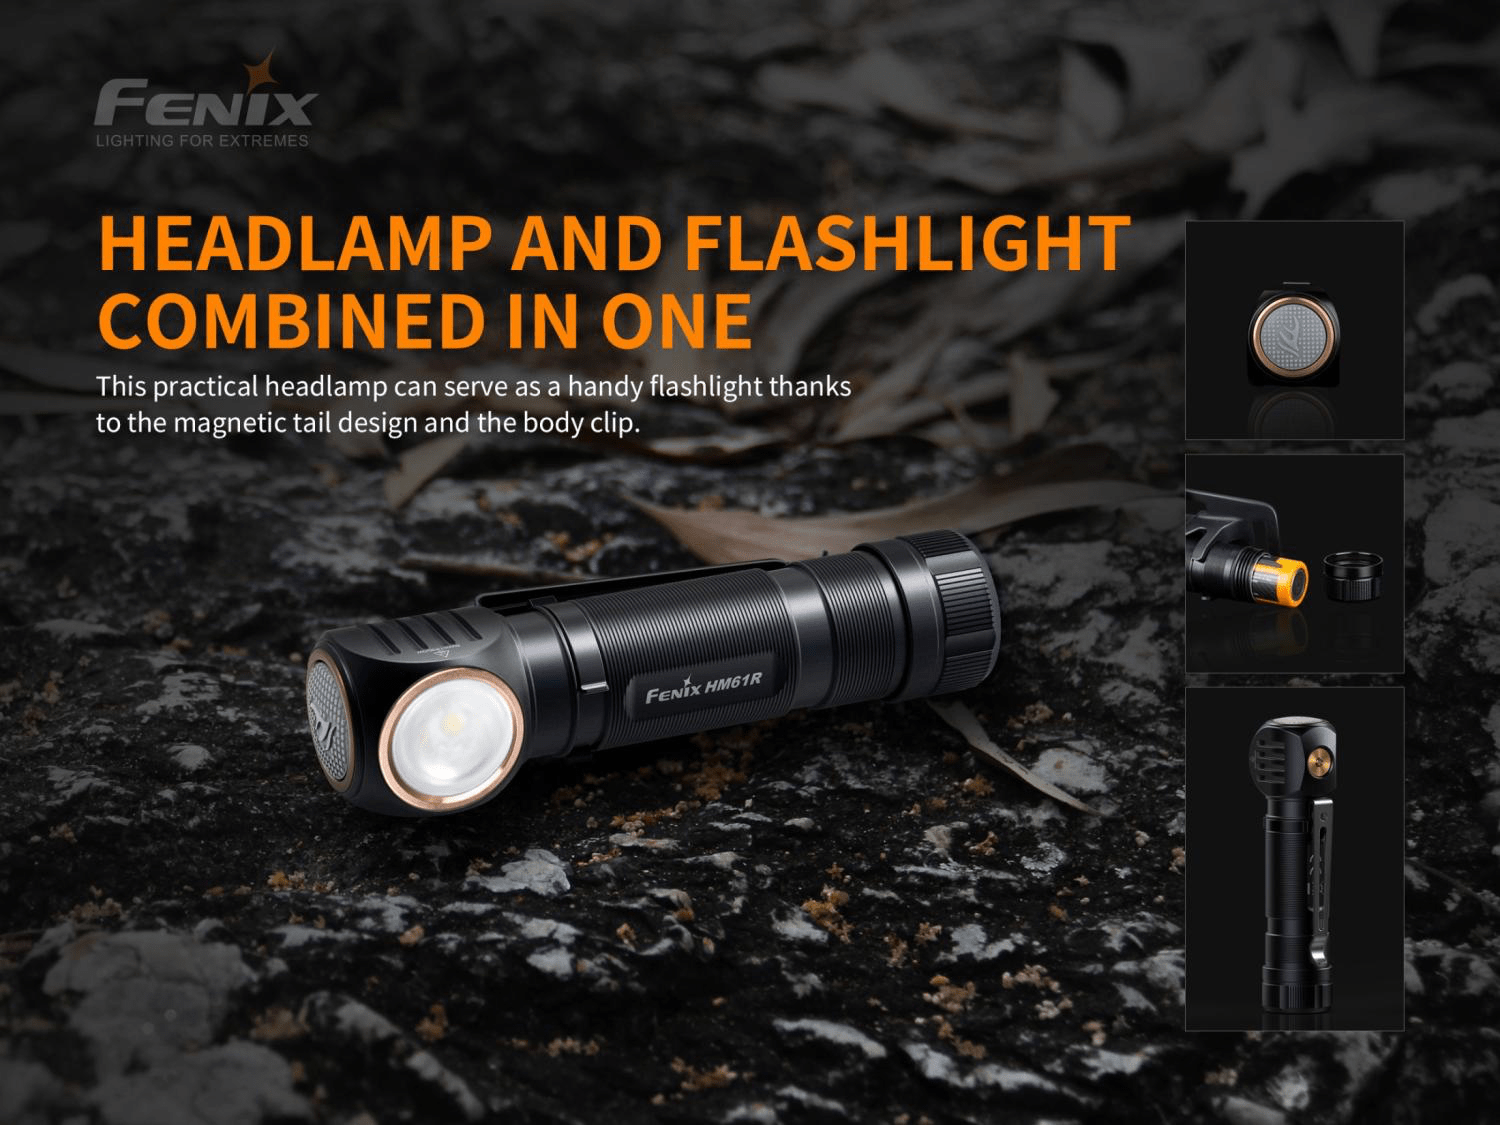 Fenix HM61R LED Headlamp, Rechargeable Powerful Lightweight Headlamp in India, Mulit-Functional Head Torch with Flood and Spot Light, Buy Fenix HM61R in India